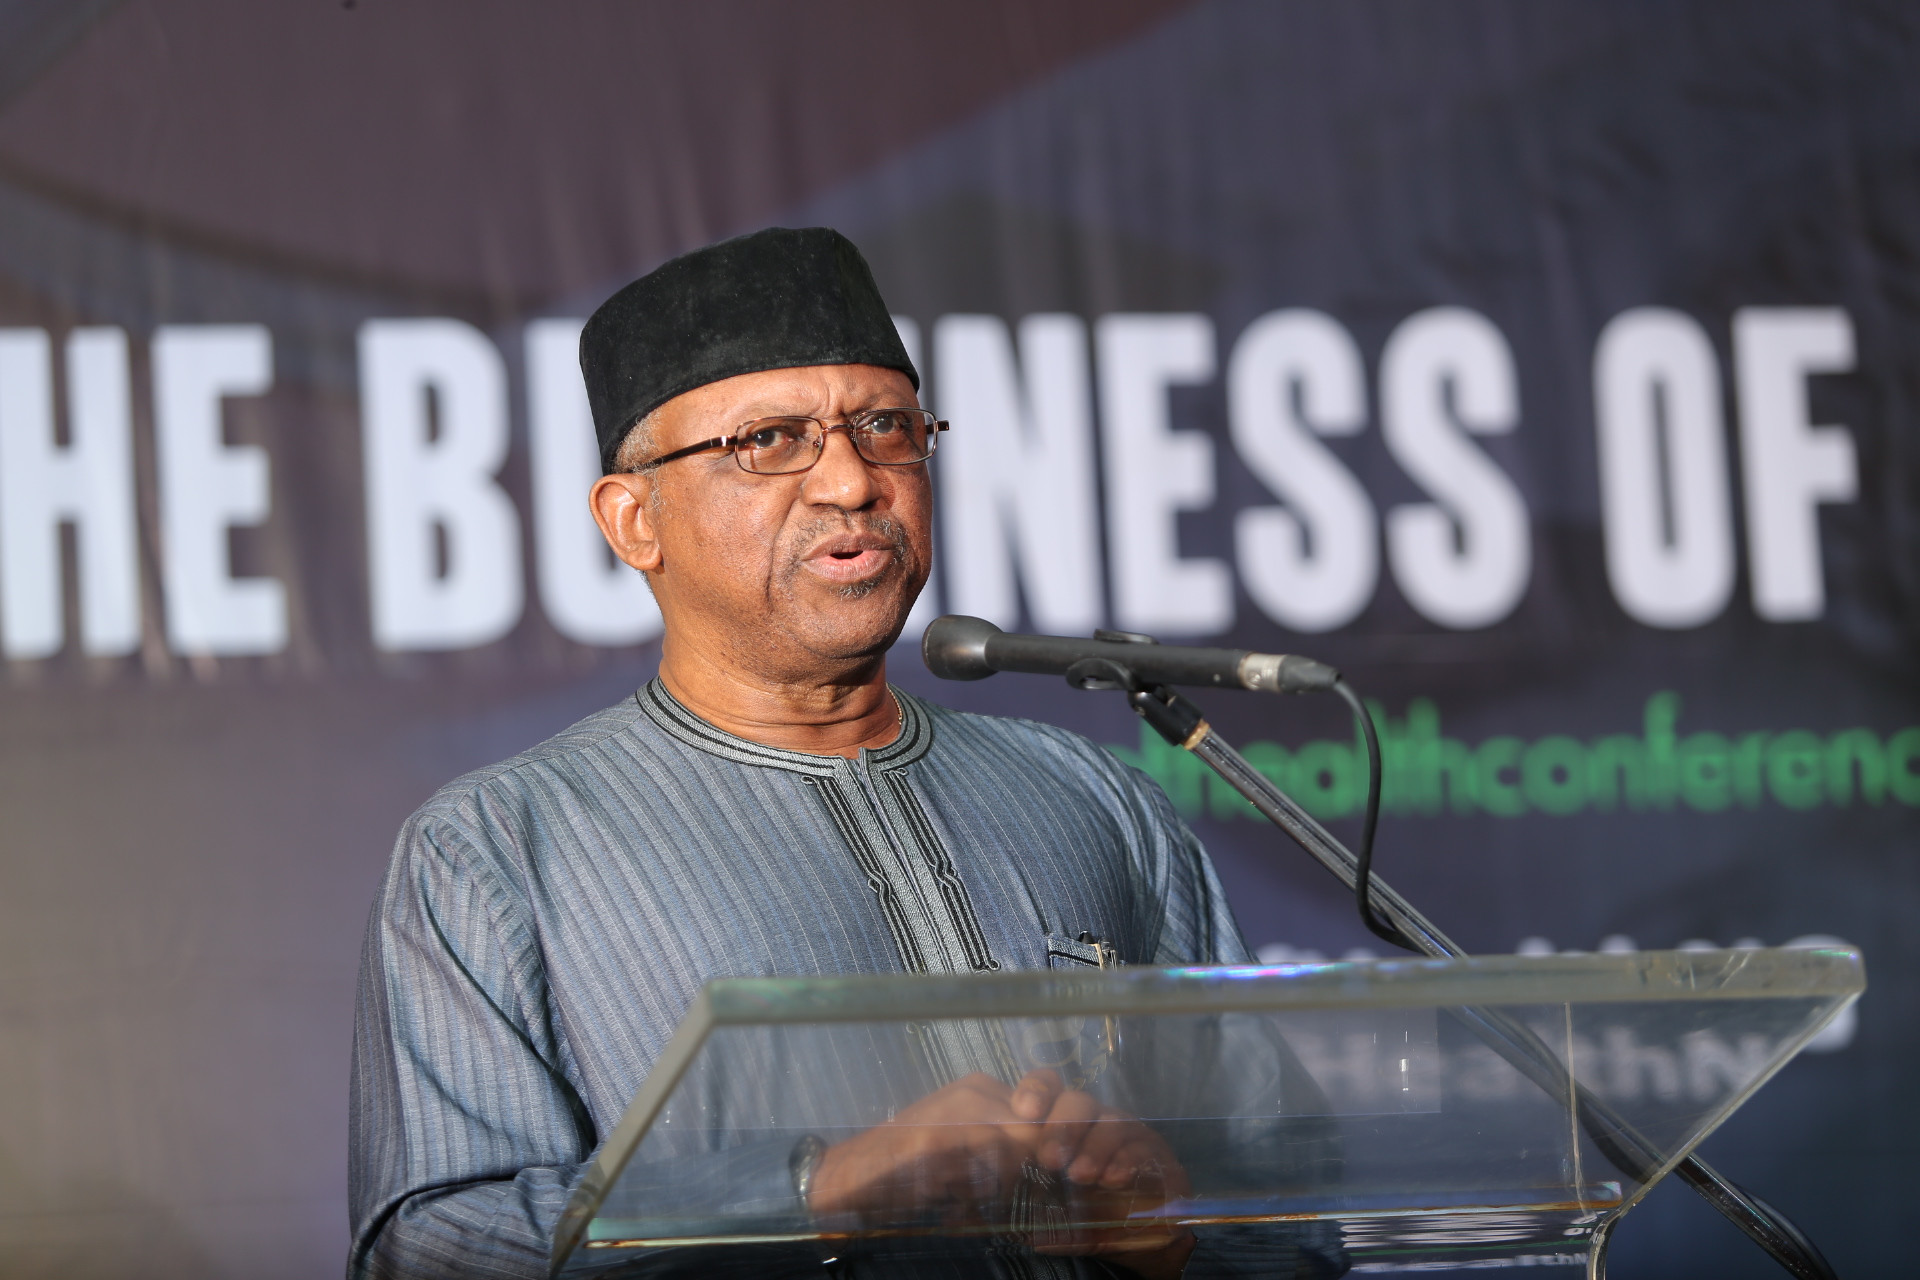 FG expecting 15 million doses of COVID-19 vaccine in February - Minister of Health, Osagie Ehanire